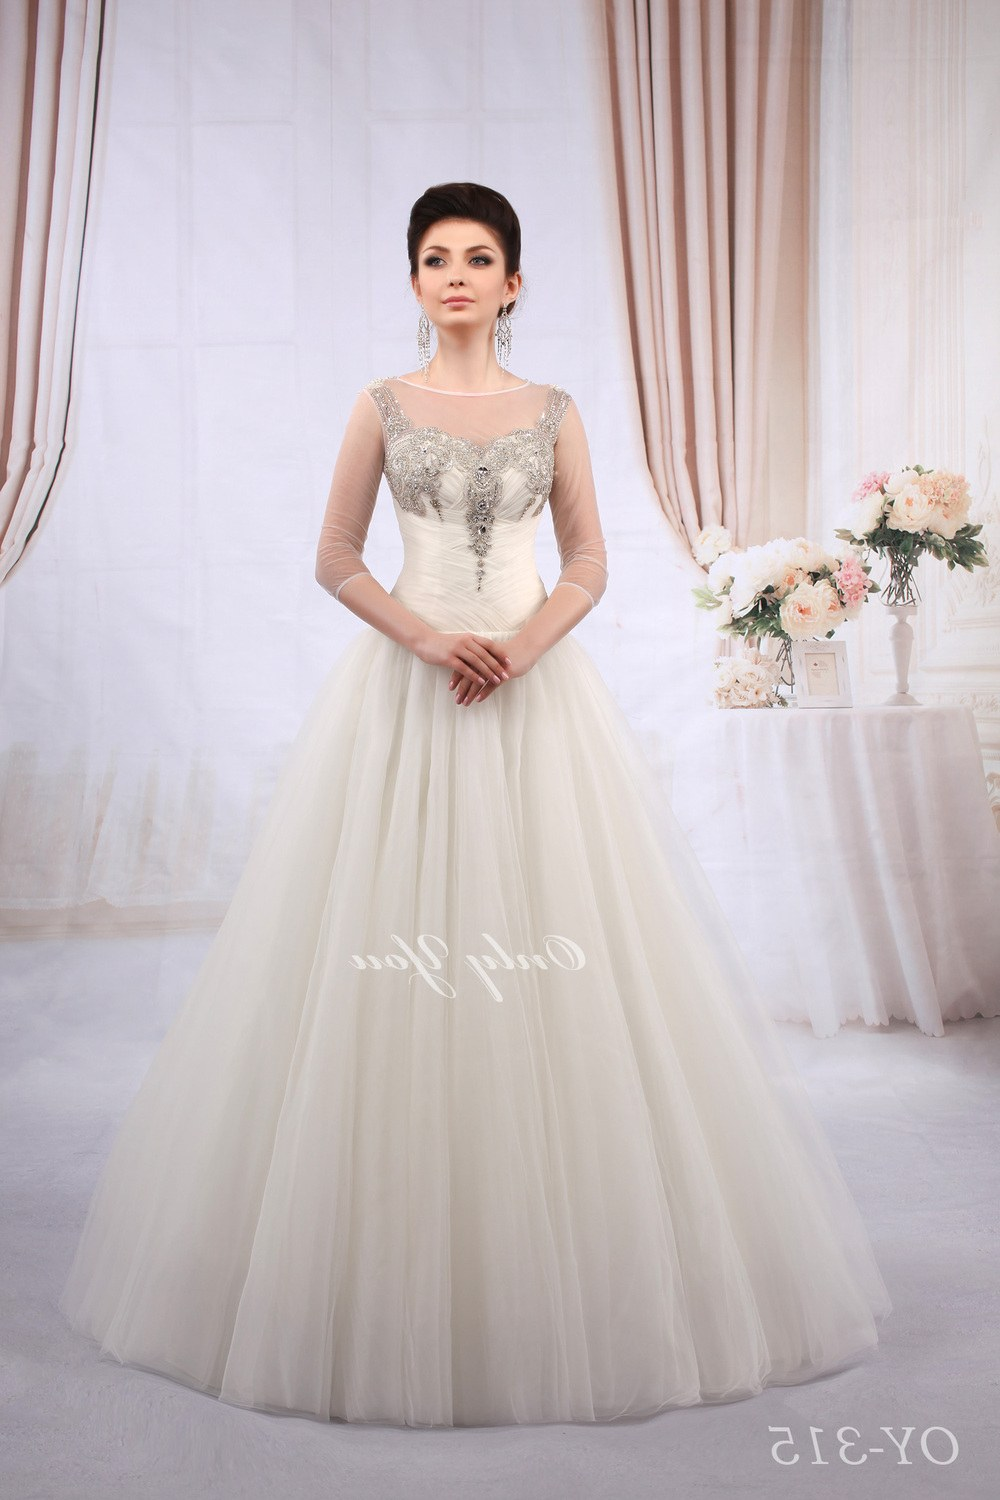 Model Vintage Bridesmaid Dress Hijab Zwdg Ball Gown Wedding Dress with Bling Luxury Plus Size Vintage